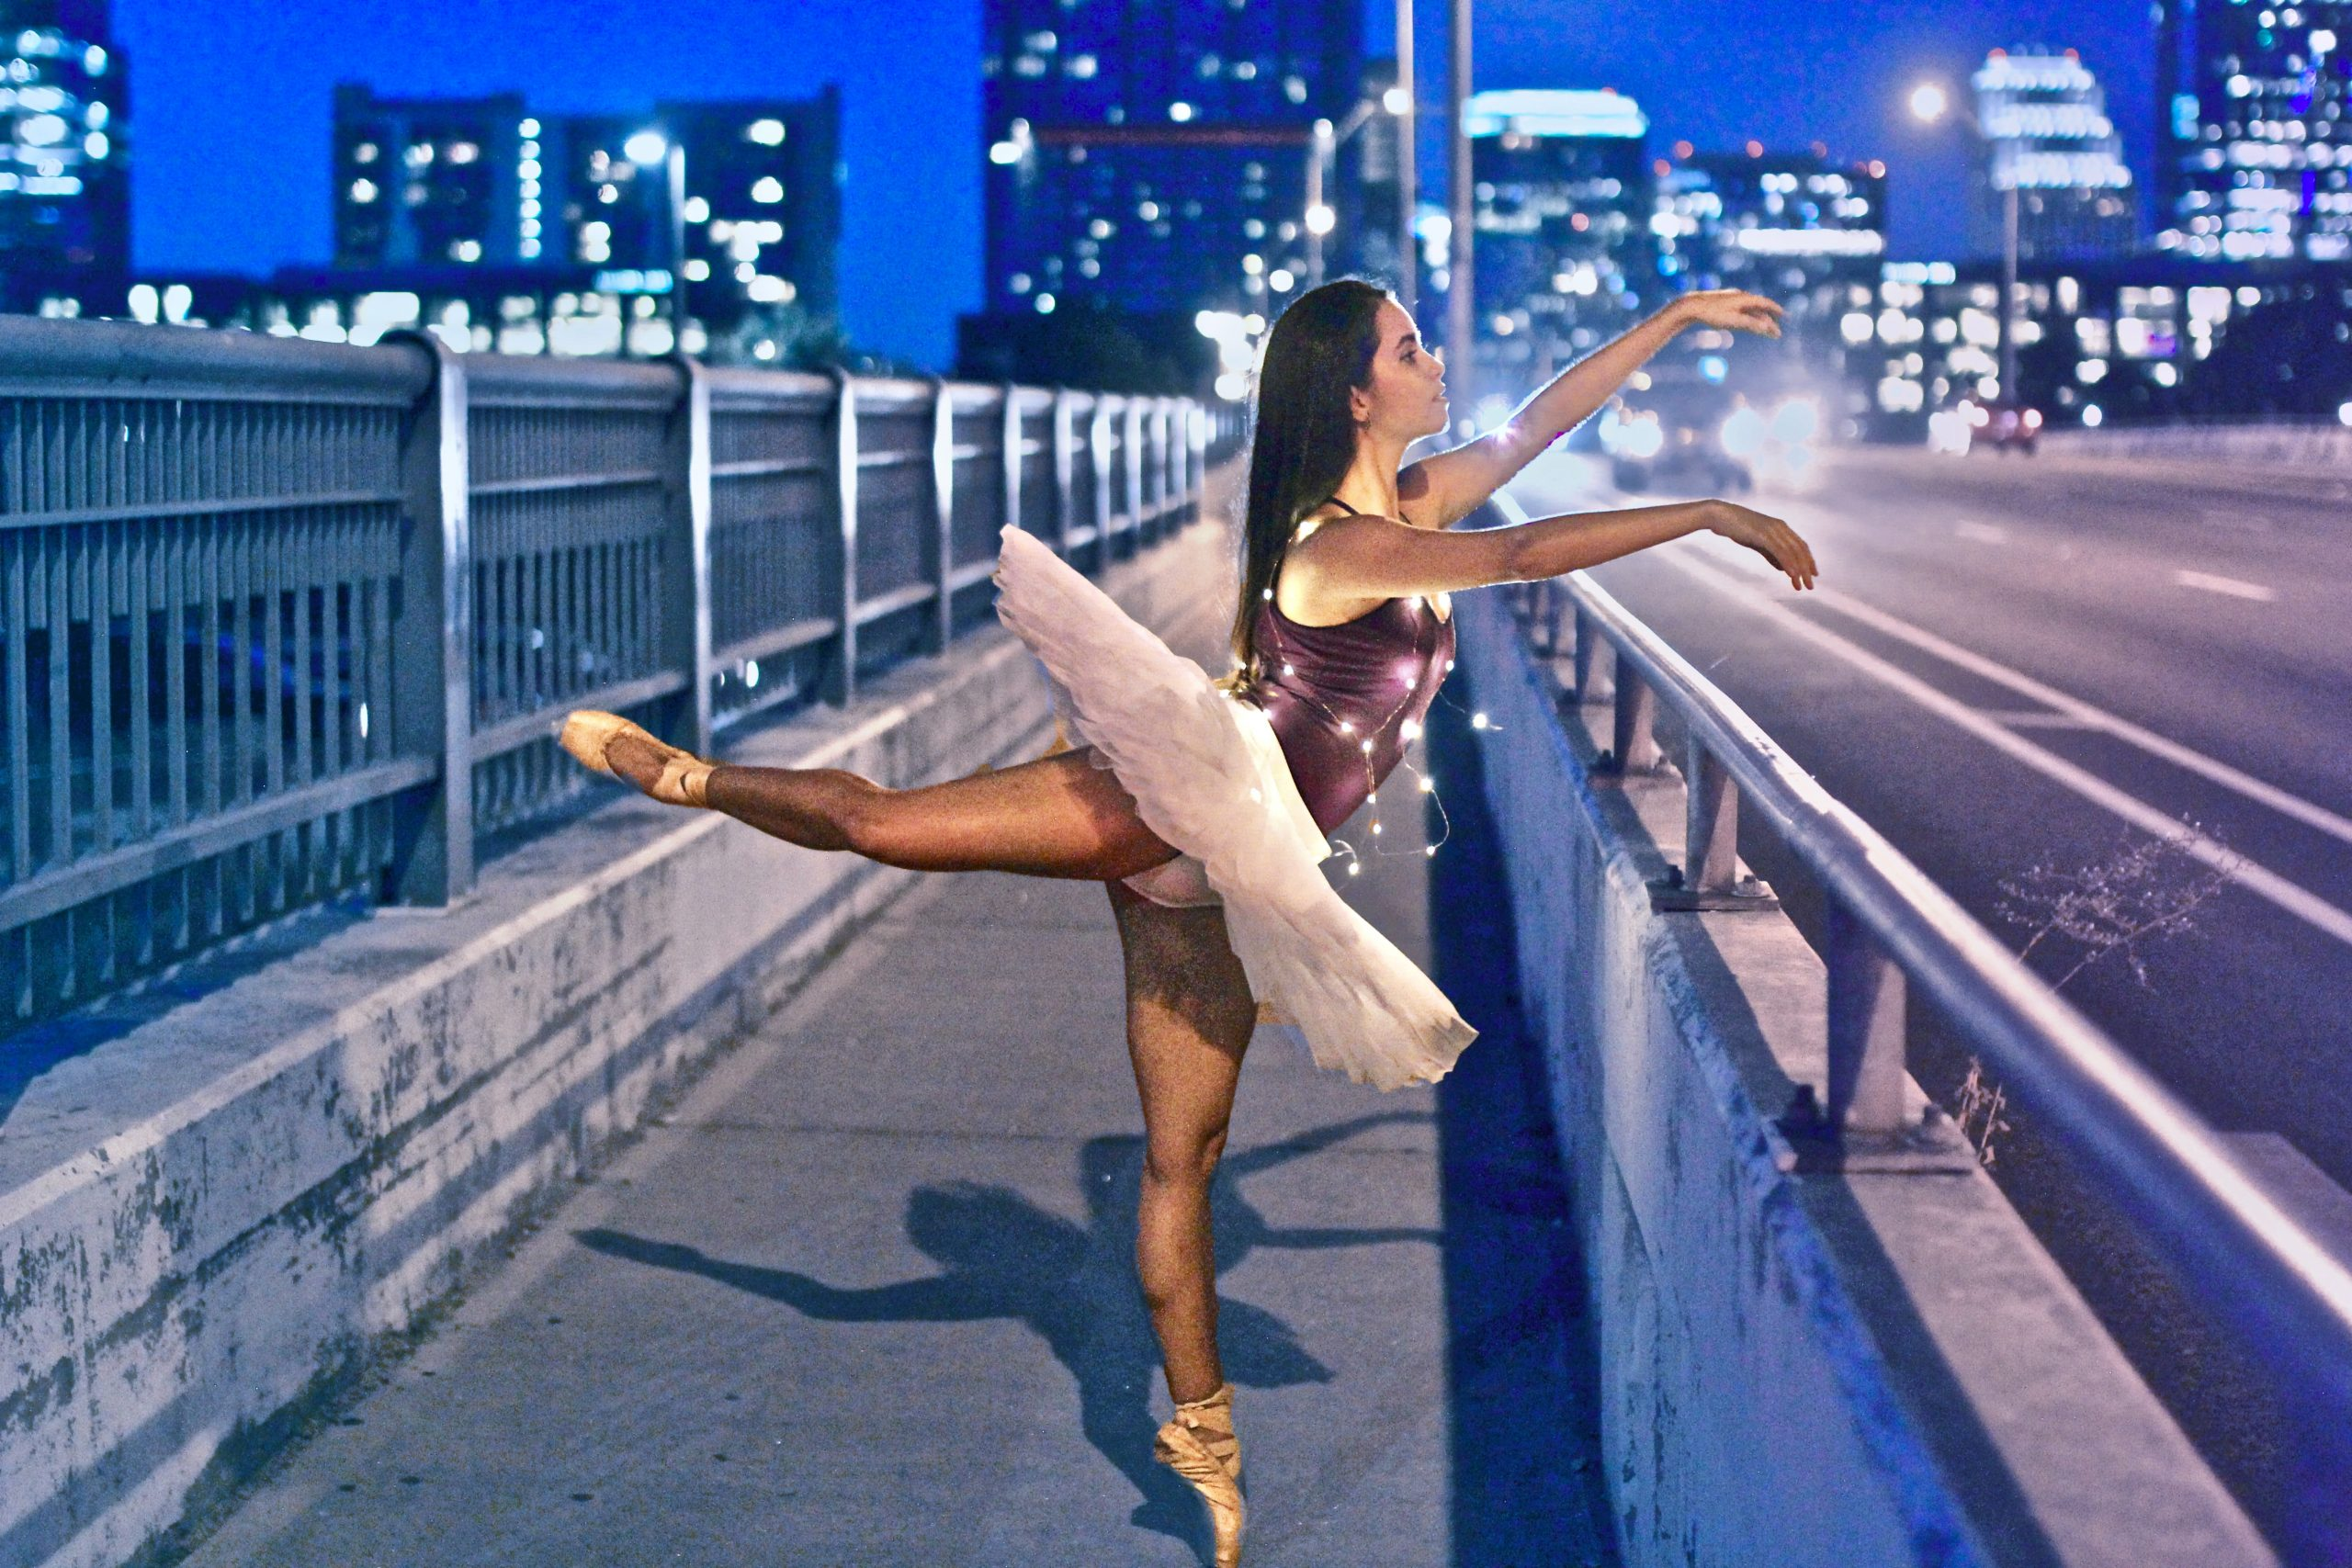 We had struggled all night to get a good capture of this one dance pose, but finally was able to catch the right moment for her to hold the pose and for oncoming cars to light her up in just the right way. Even though it took a while, the end result was worth it.